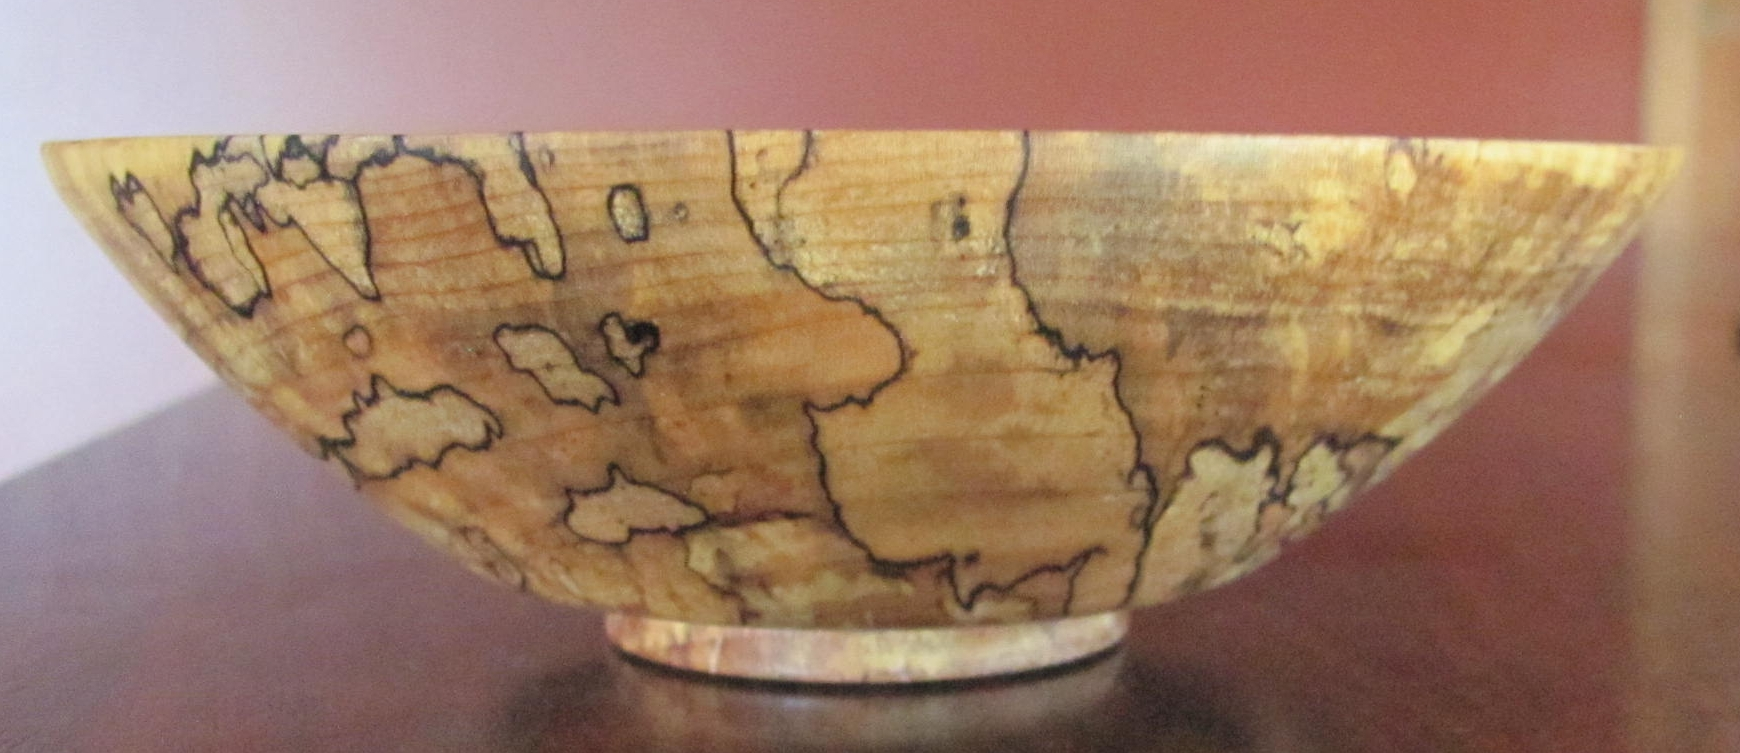 An exquisite curly spalted maple bowl